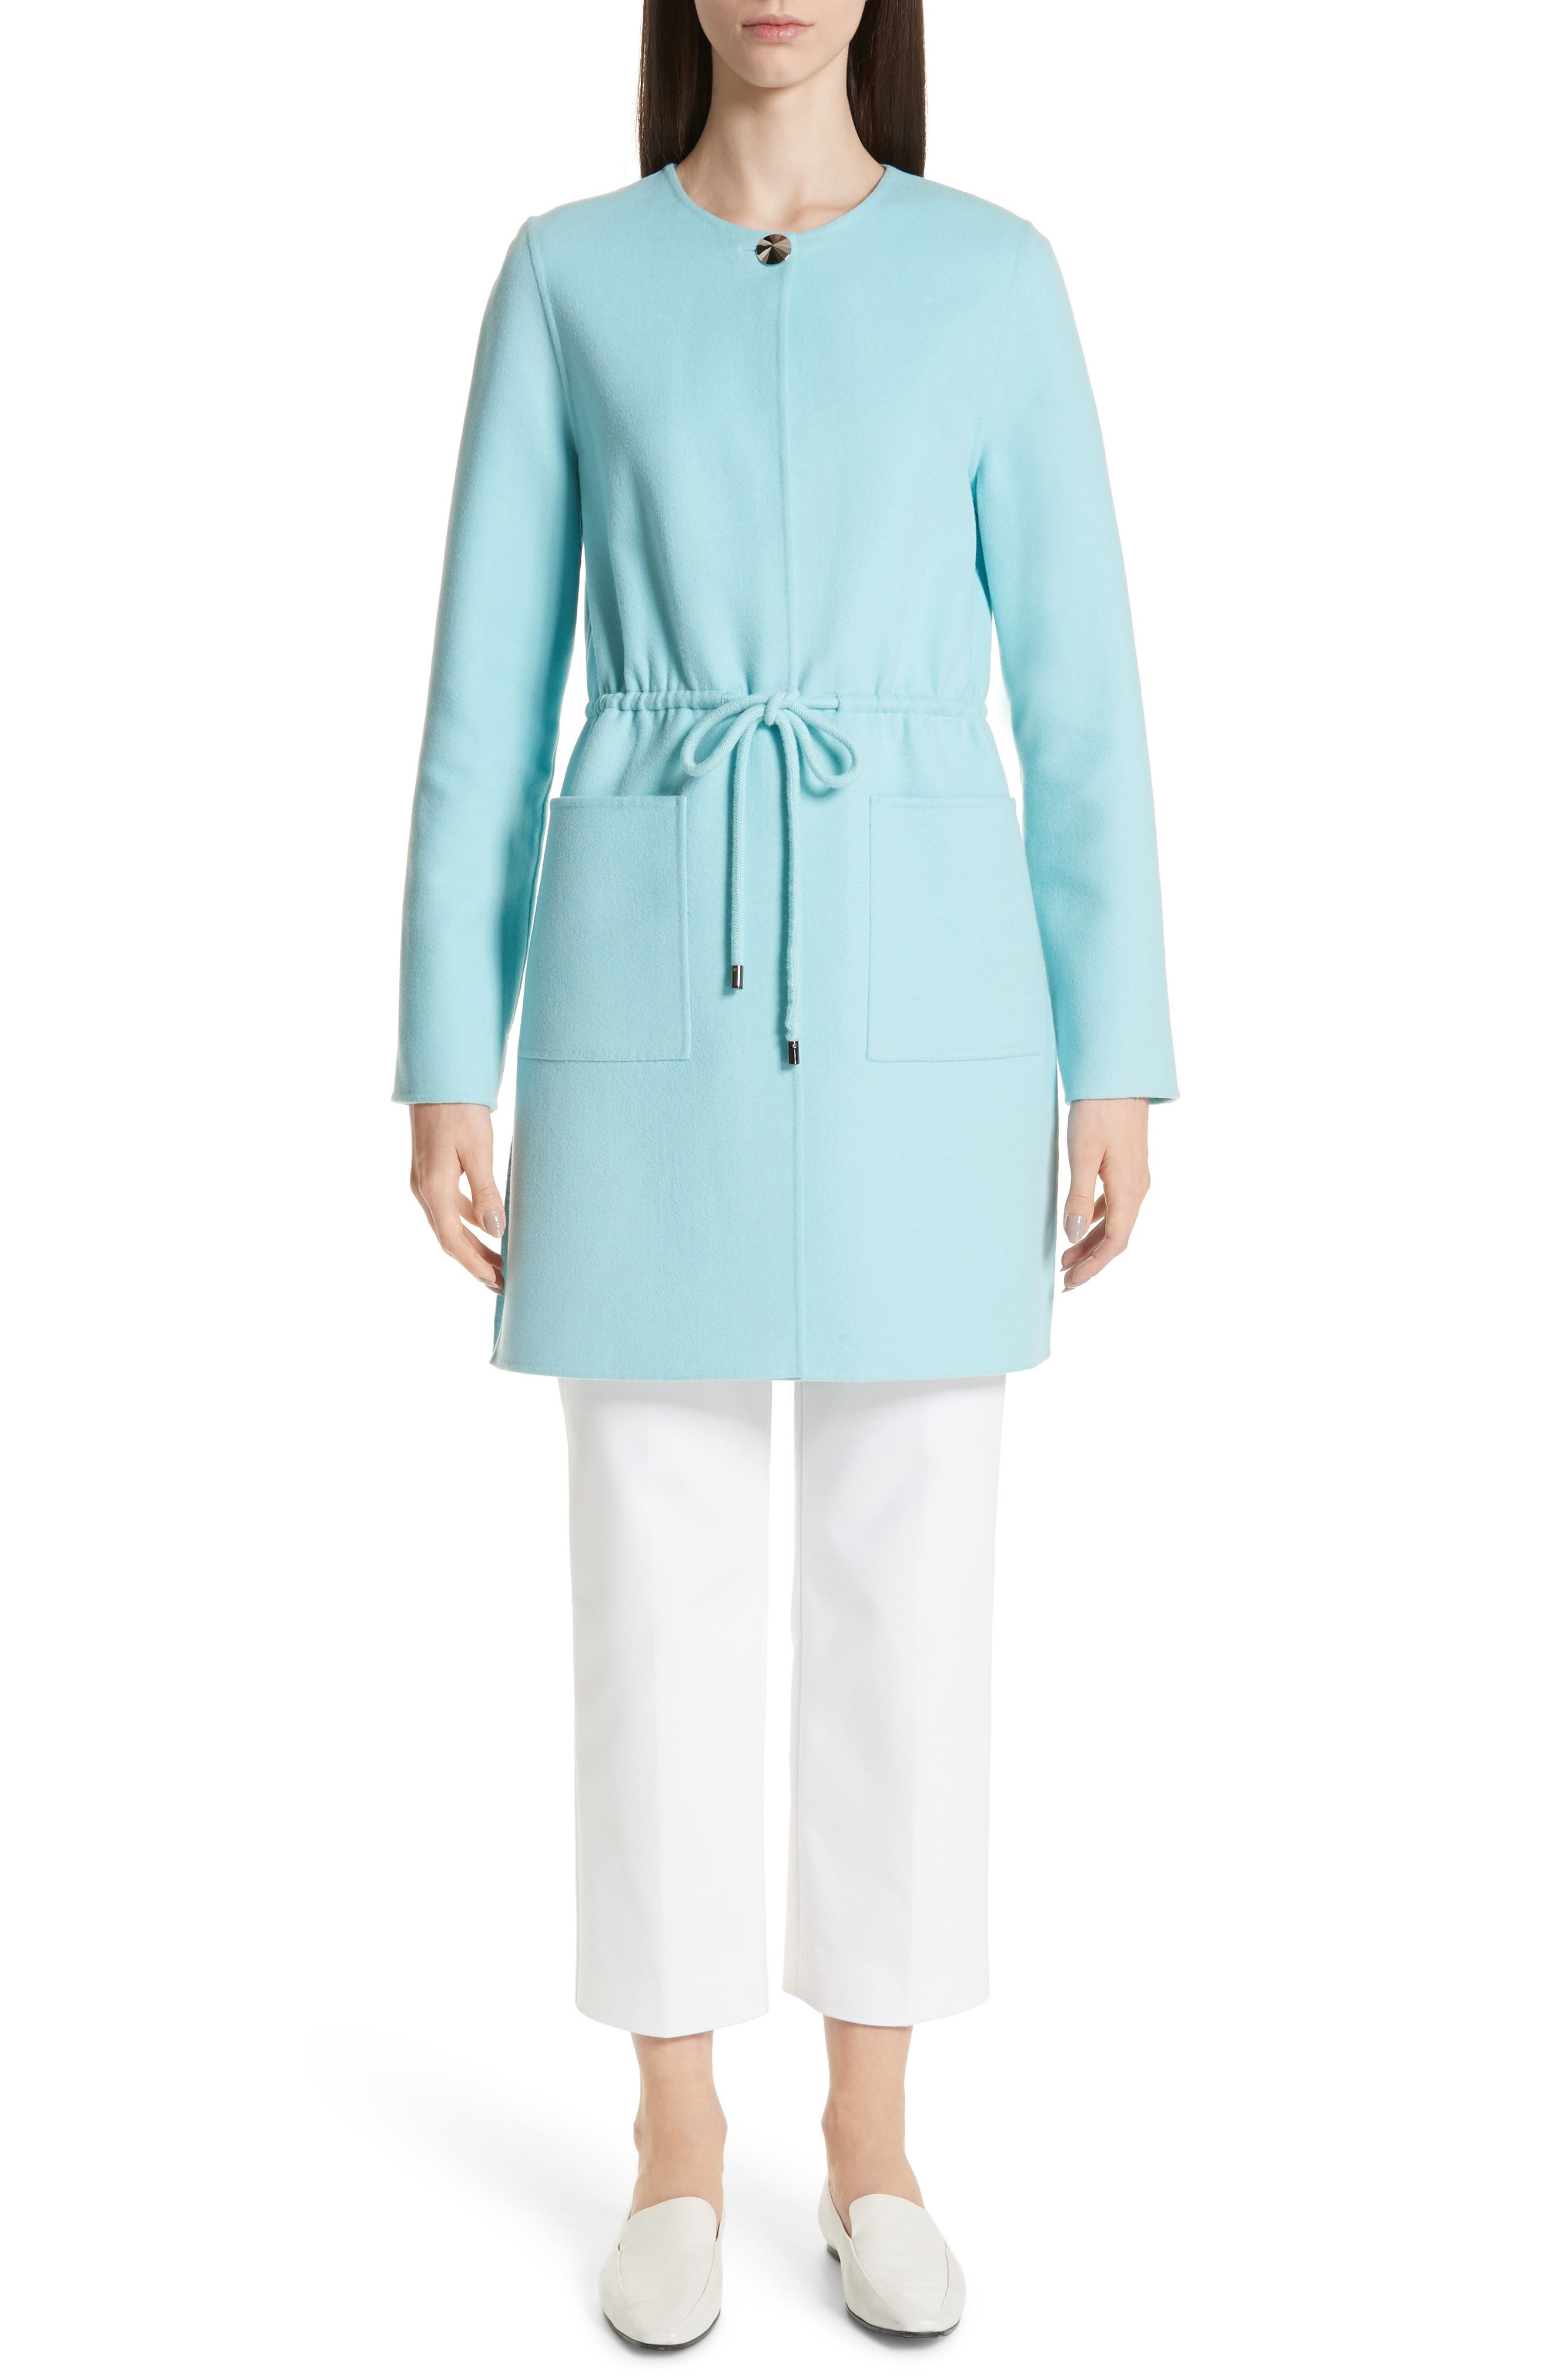 ST. JOHN COLLECTION,                             Double Face Wool & Cashmere Jacket,                             Alternate thumbnail 8, color,                             AQUAMARINE